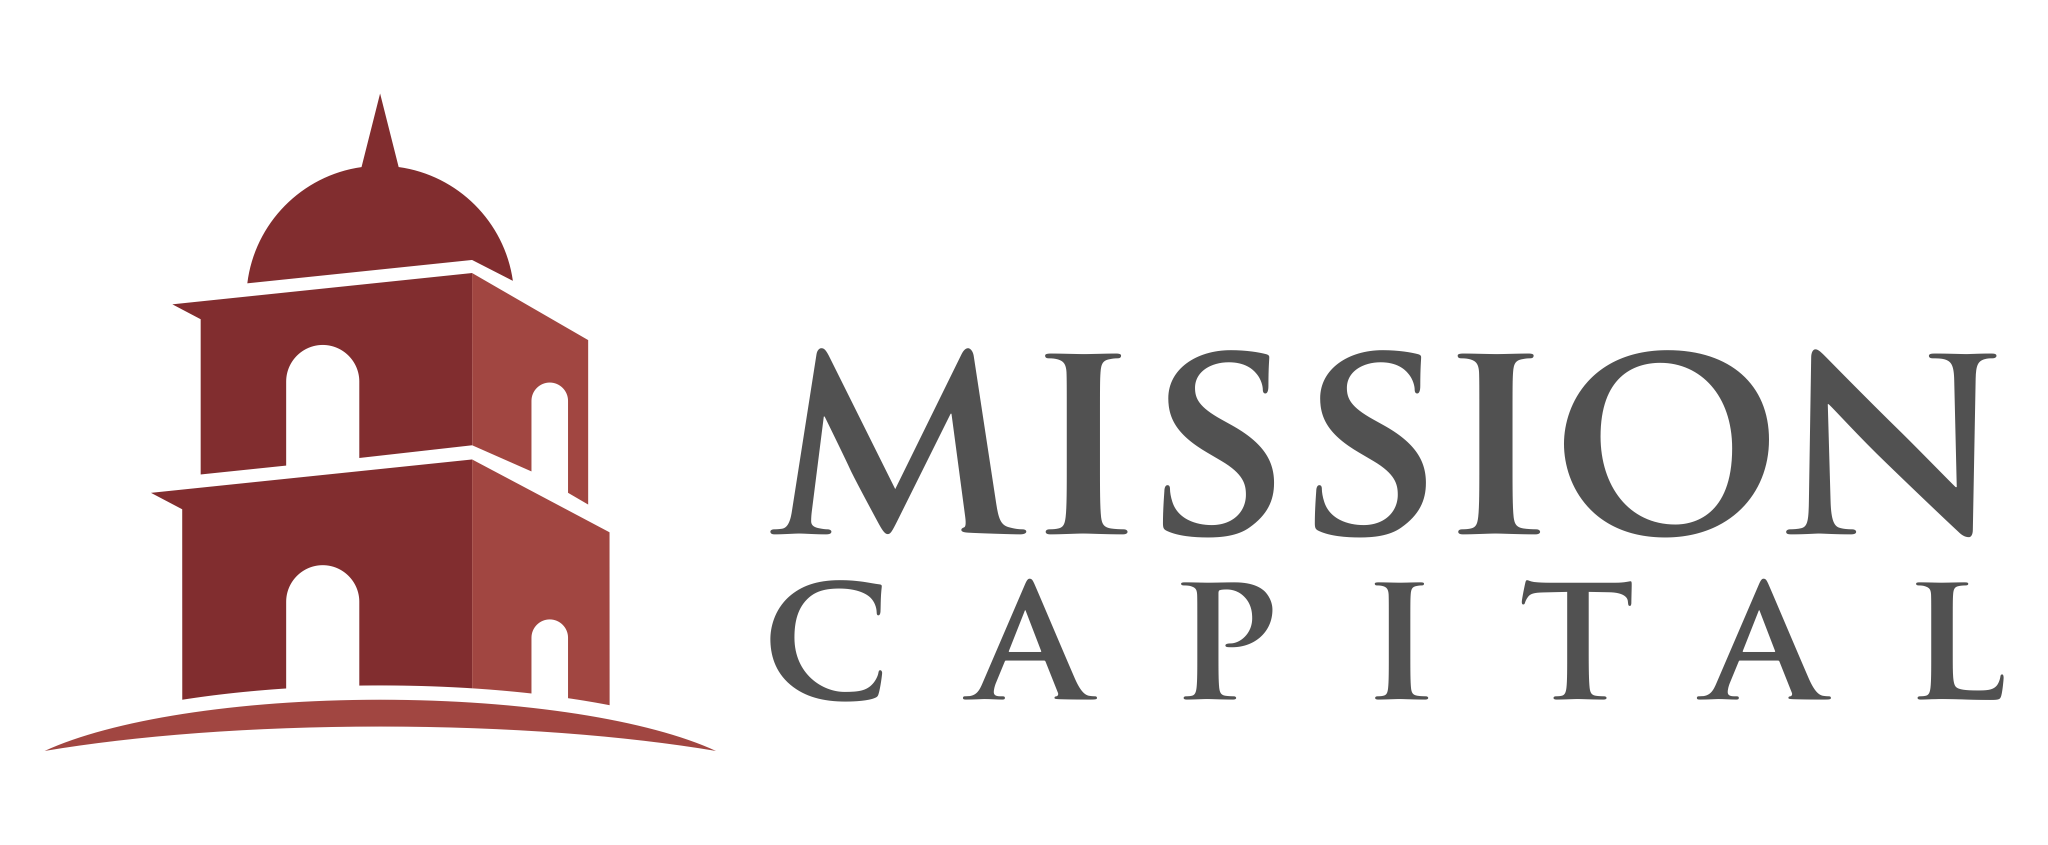 Mission Capital, LLC